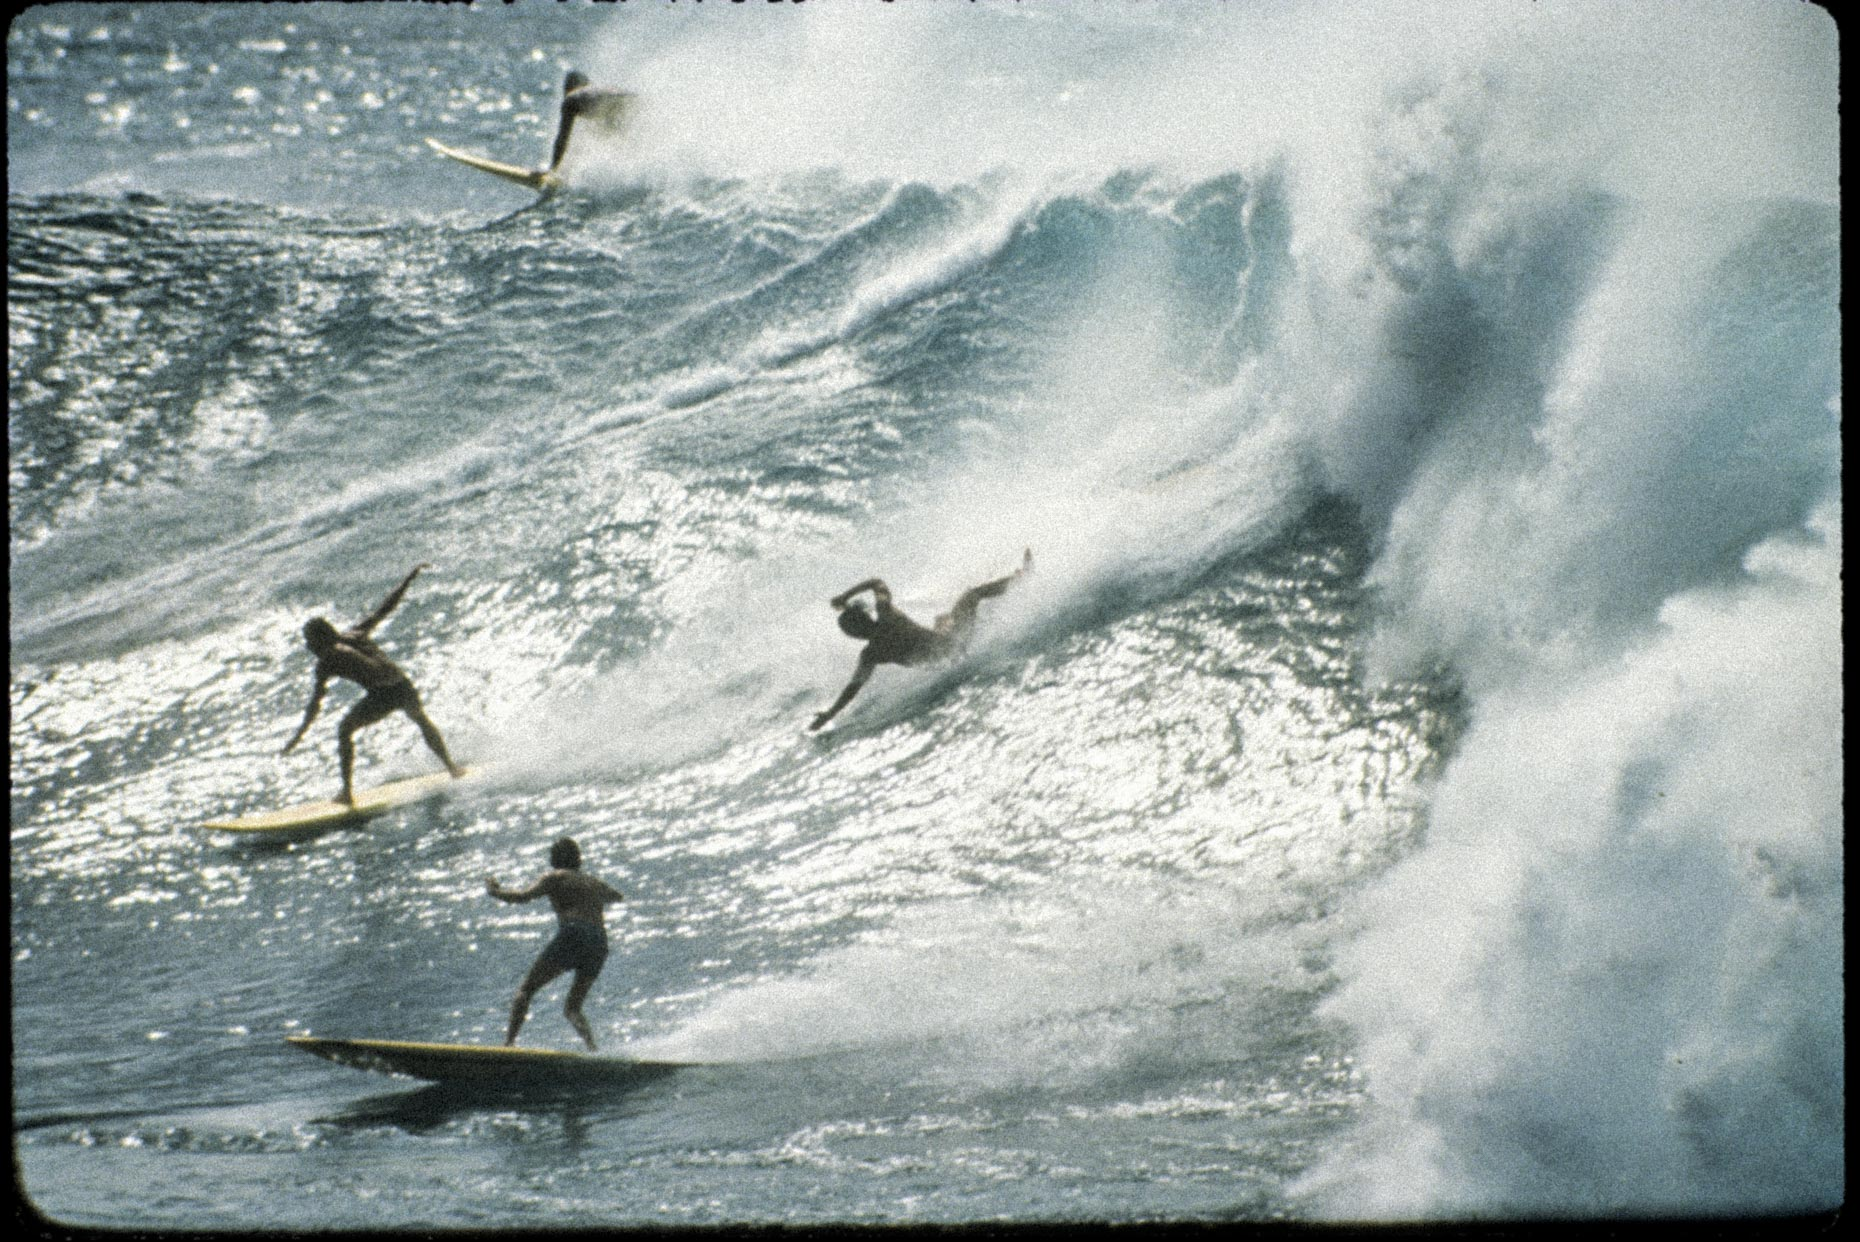 Waimea Bay - Late 70